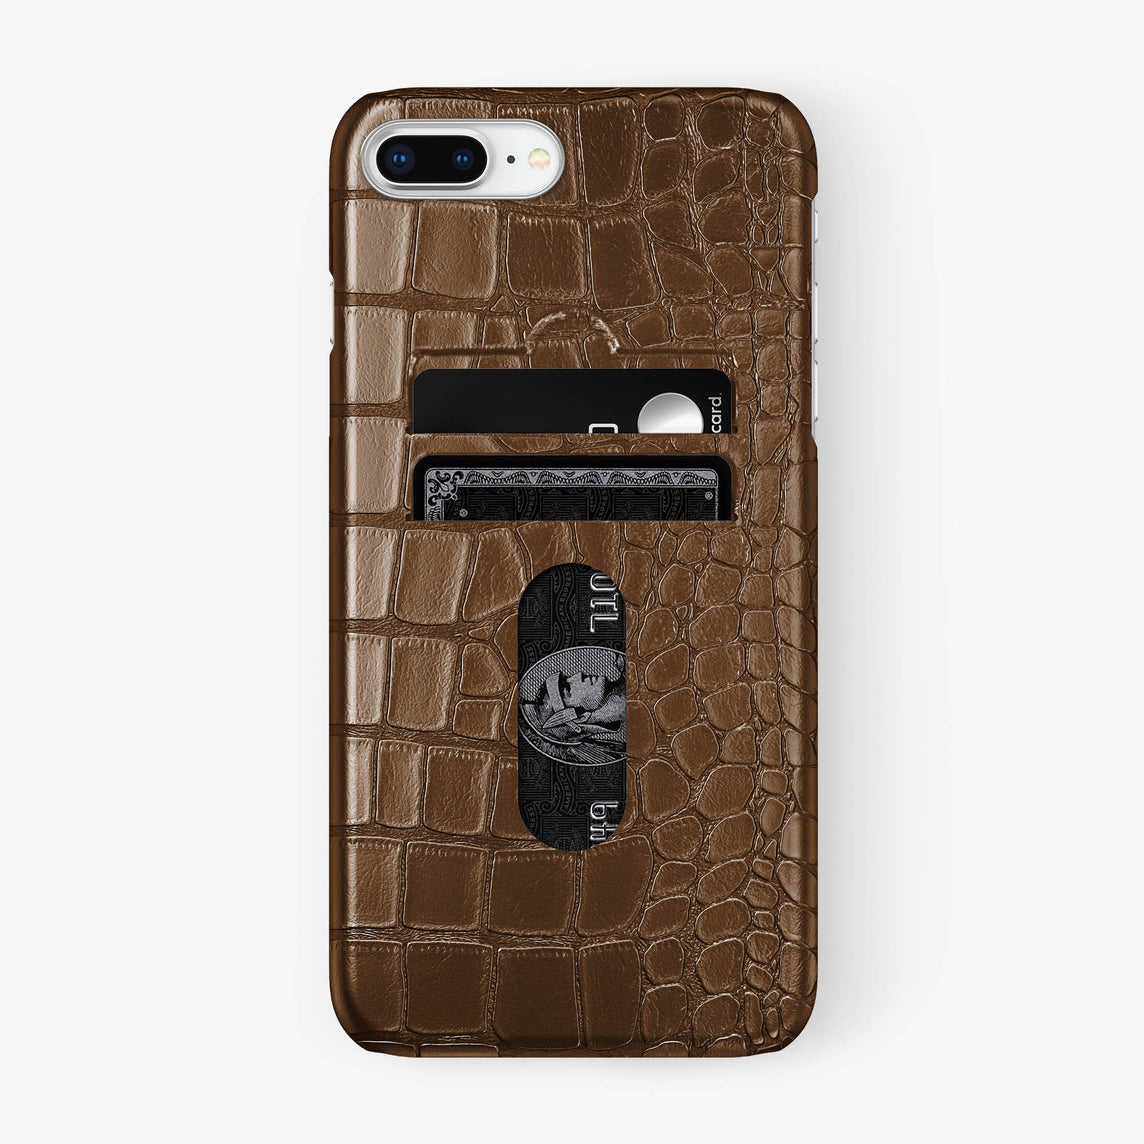 Alligator Card Holder Case iPhone 7/8 Plus | Brown - Stainless Steel